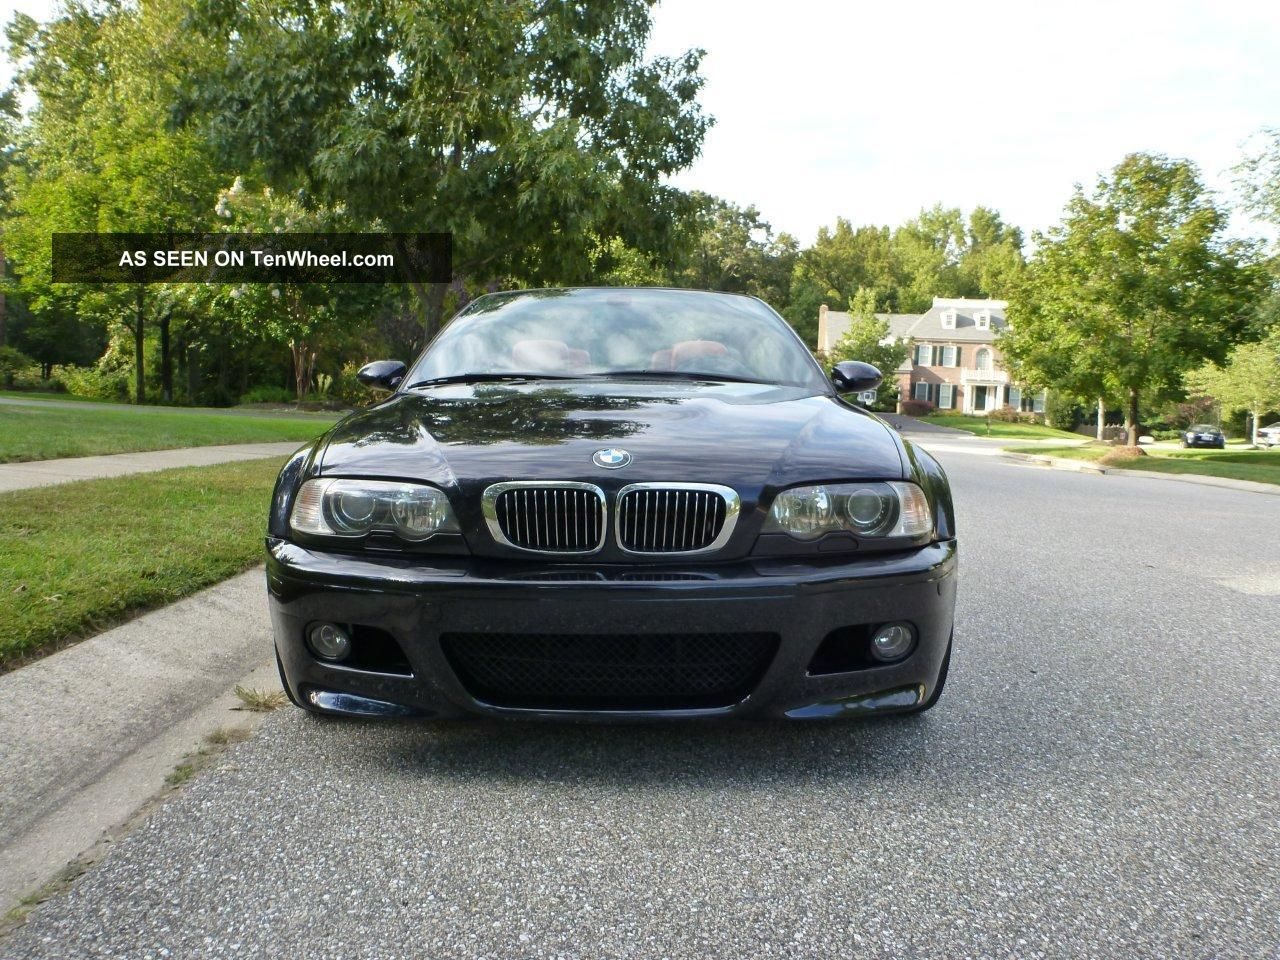 2005 Bmw M3 Convertible W / Smg And M3 photo